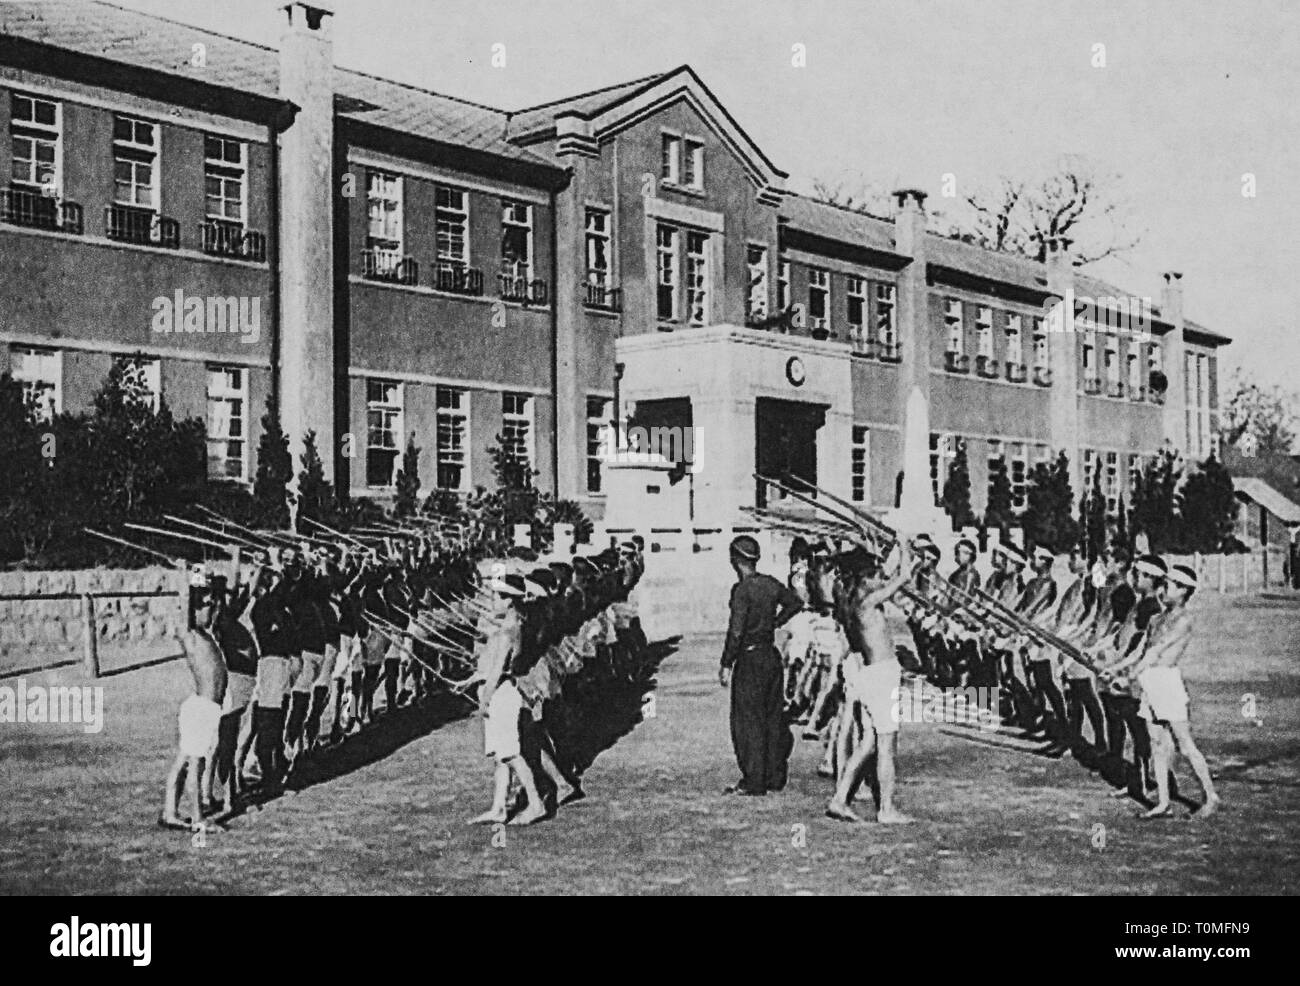 Students of Tongyeong Elementary School practicing Kendo as one of military training,Gyeongnam Province, 1942, Private Collection - Stock Image